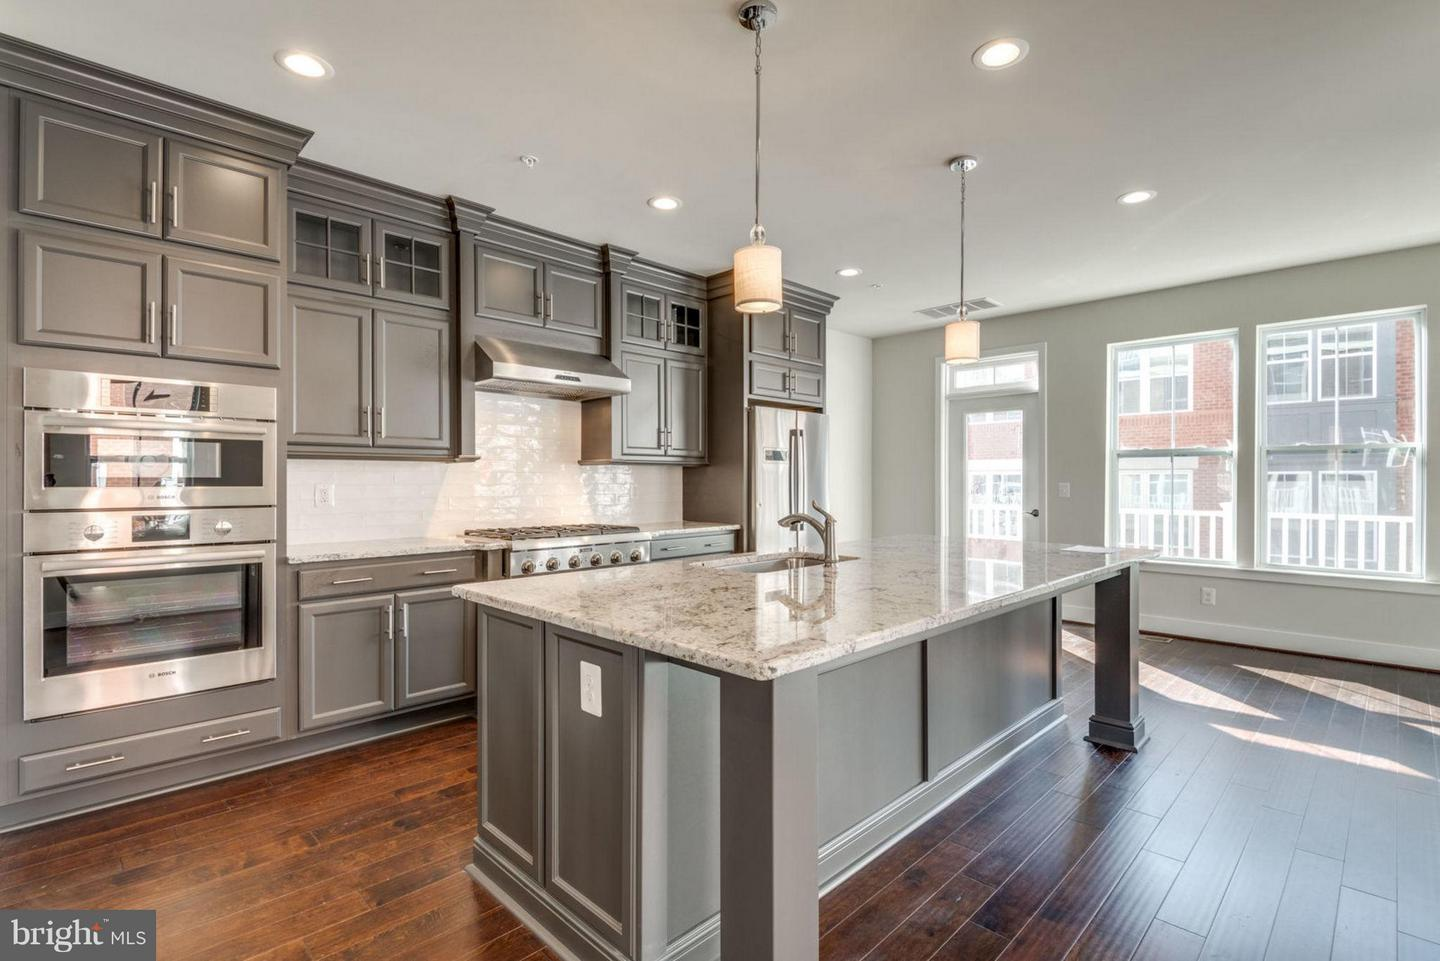 Additional photo for property listing at 11695 Sunrise Square Pl #08 Reston, Virginia 20191 United States